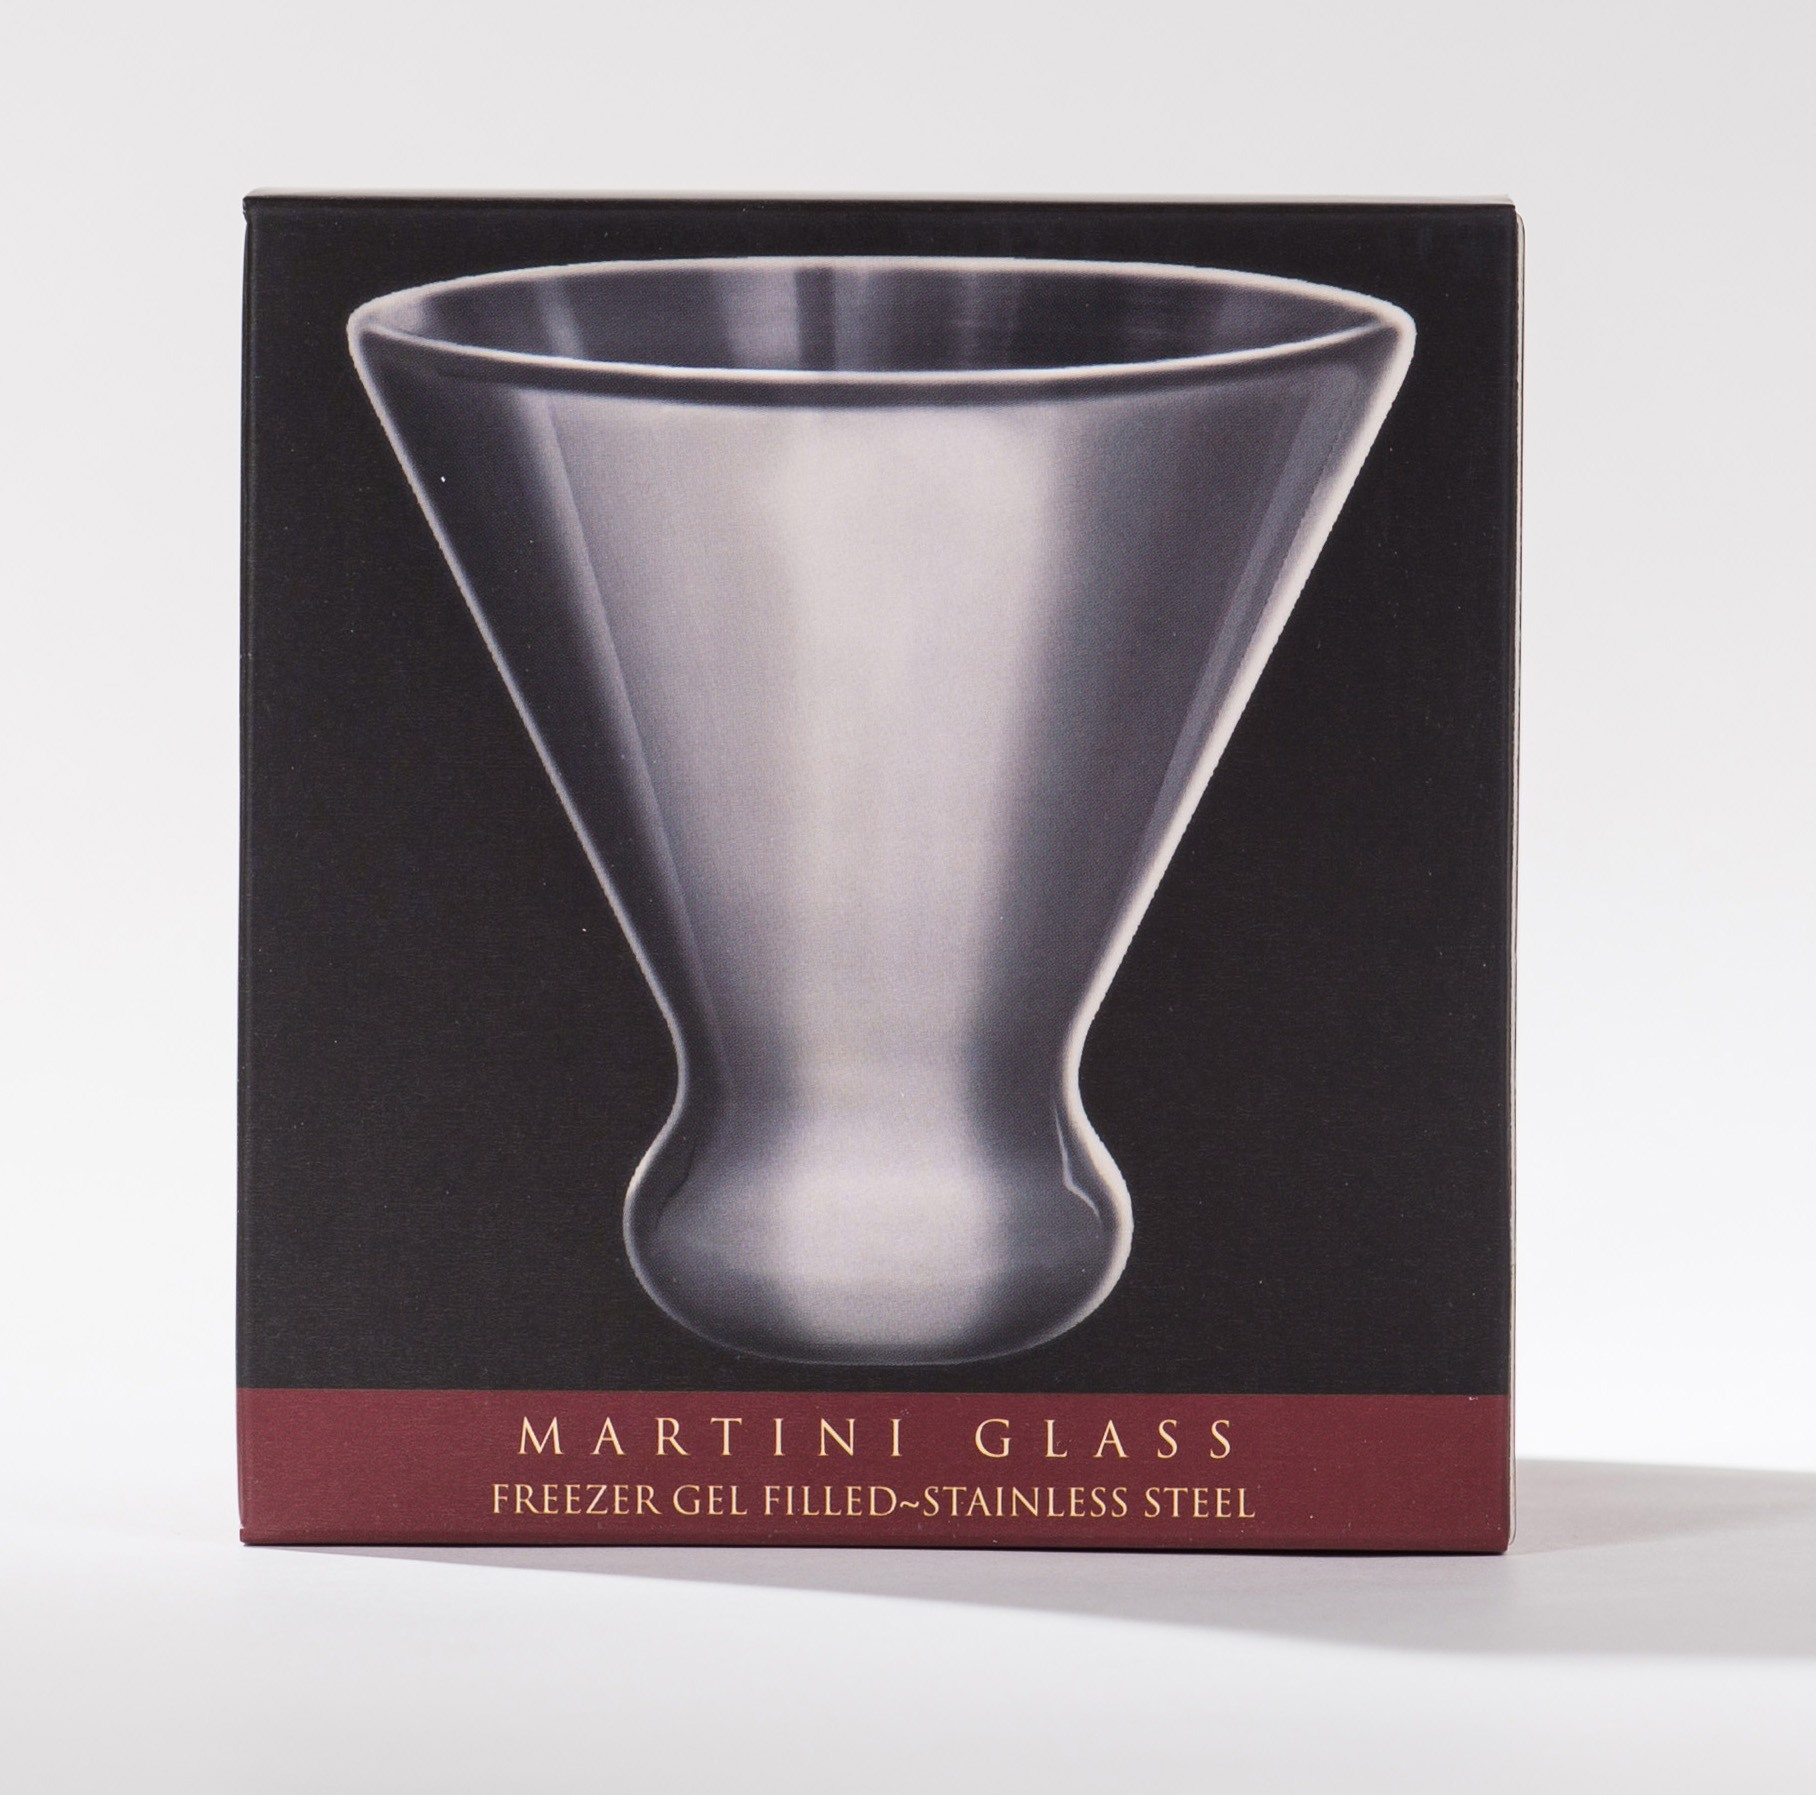 Nicholas, Stainless Steel Martini Glass